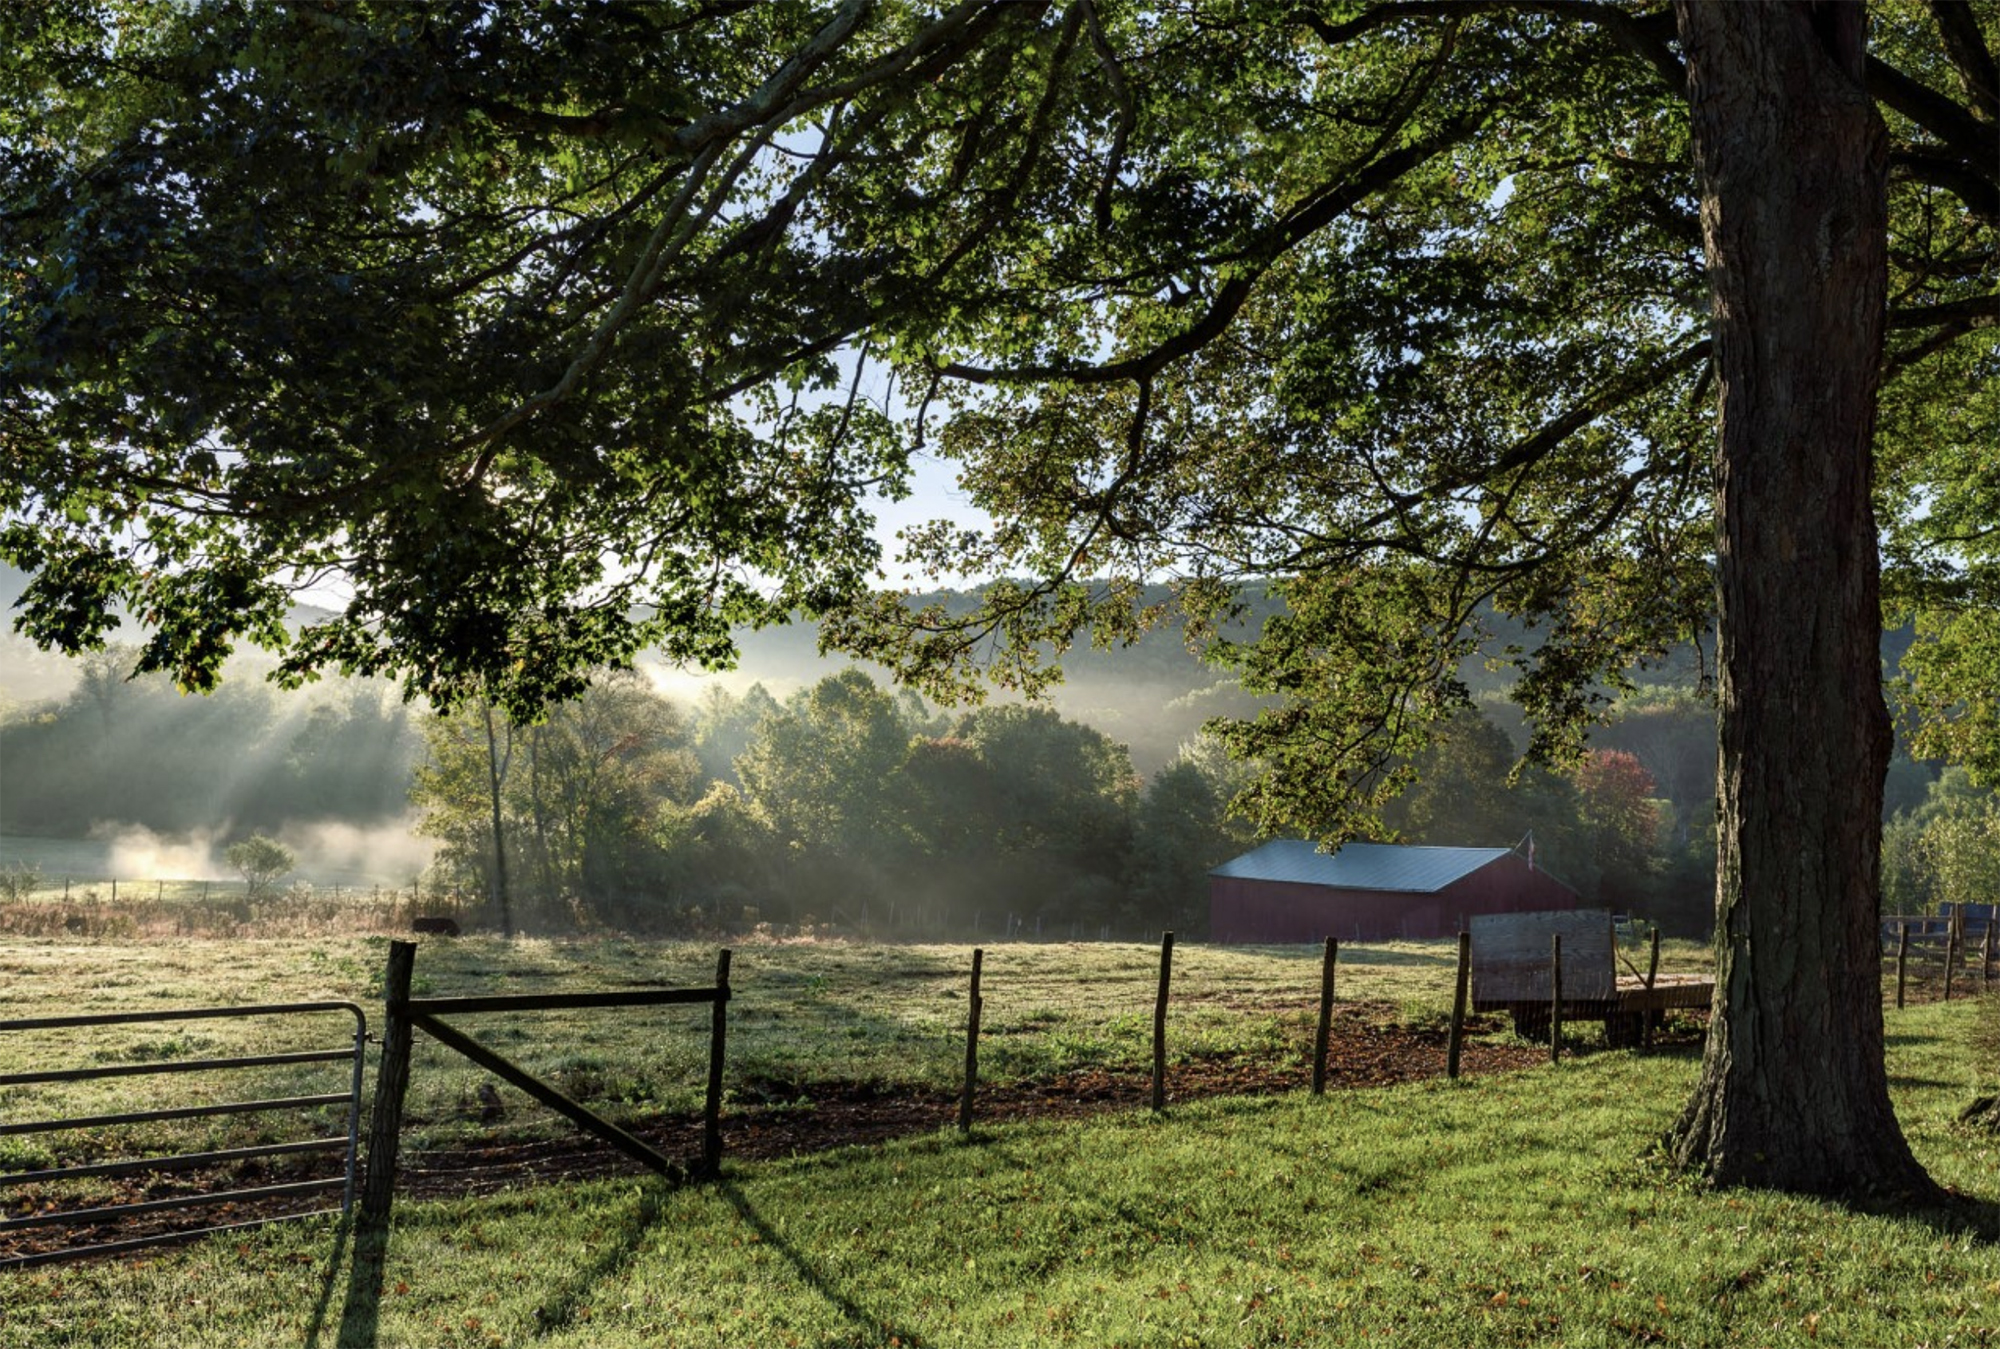 Family Farm in the Morning